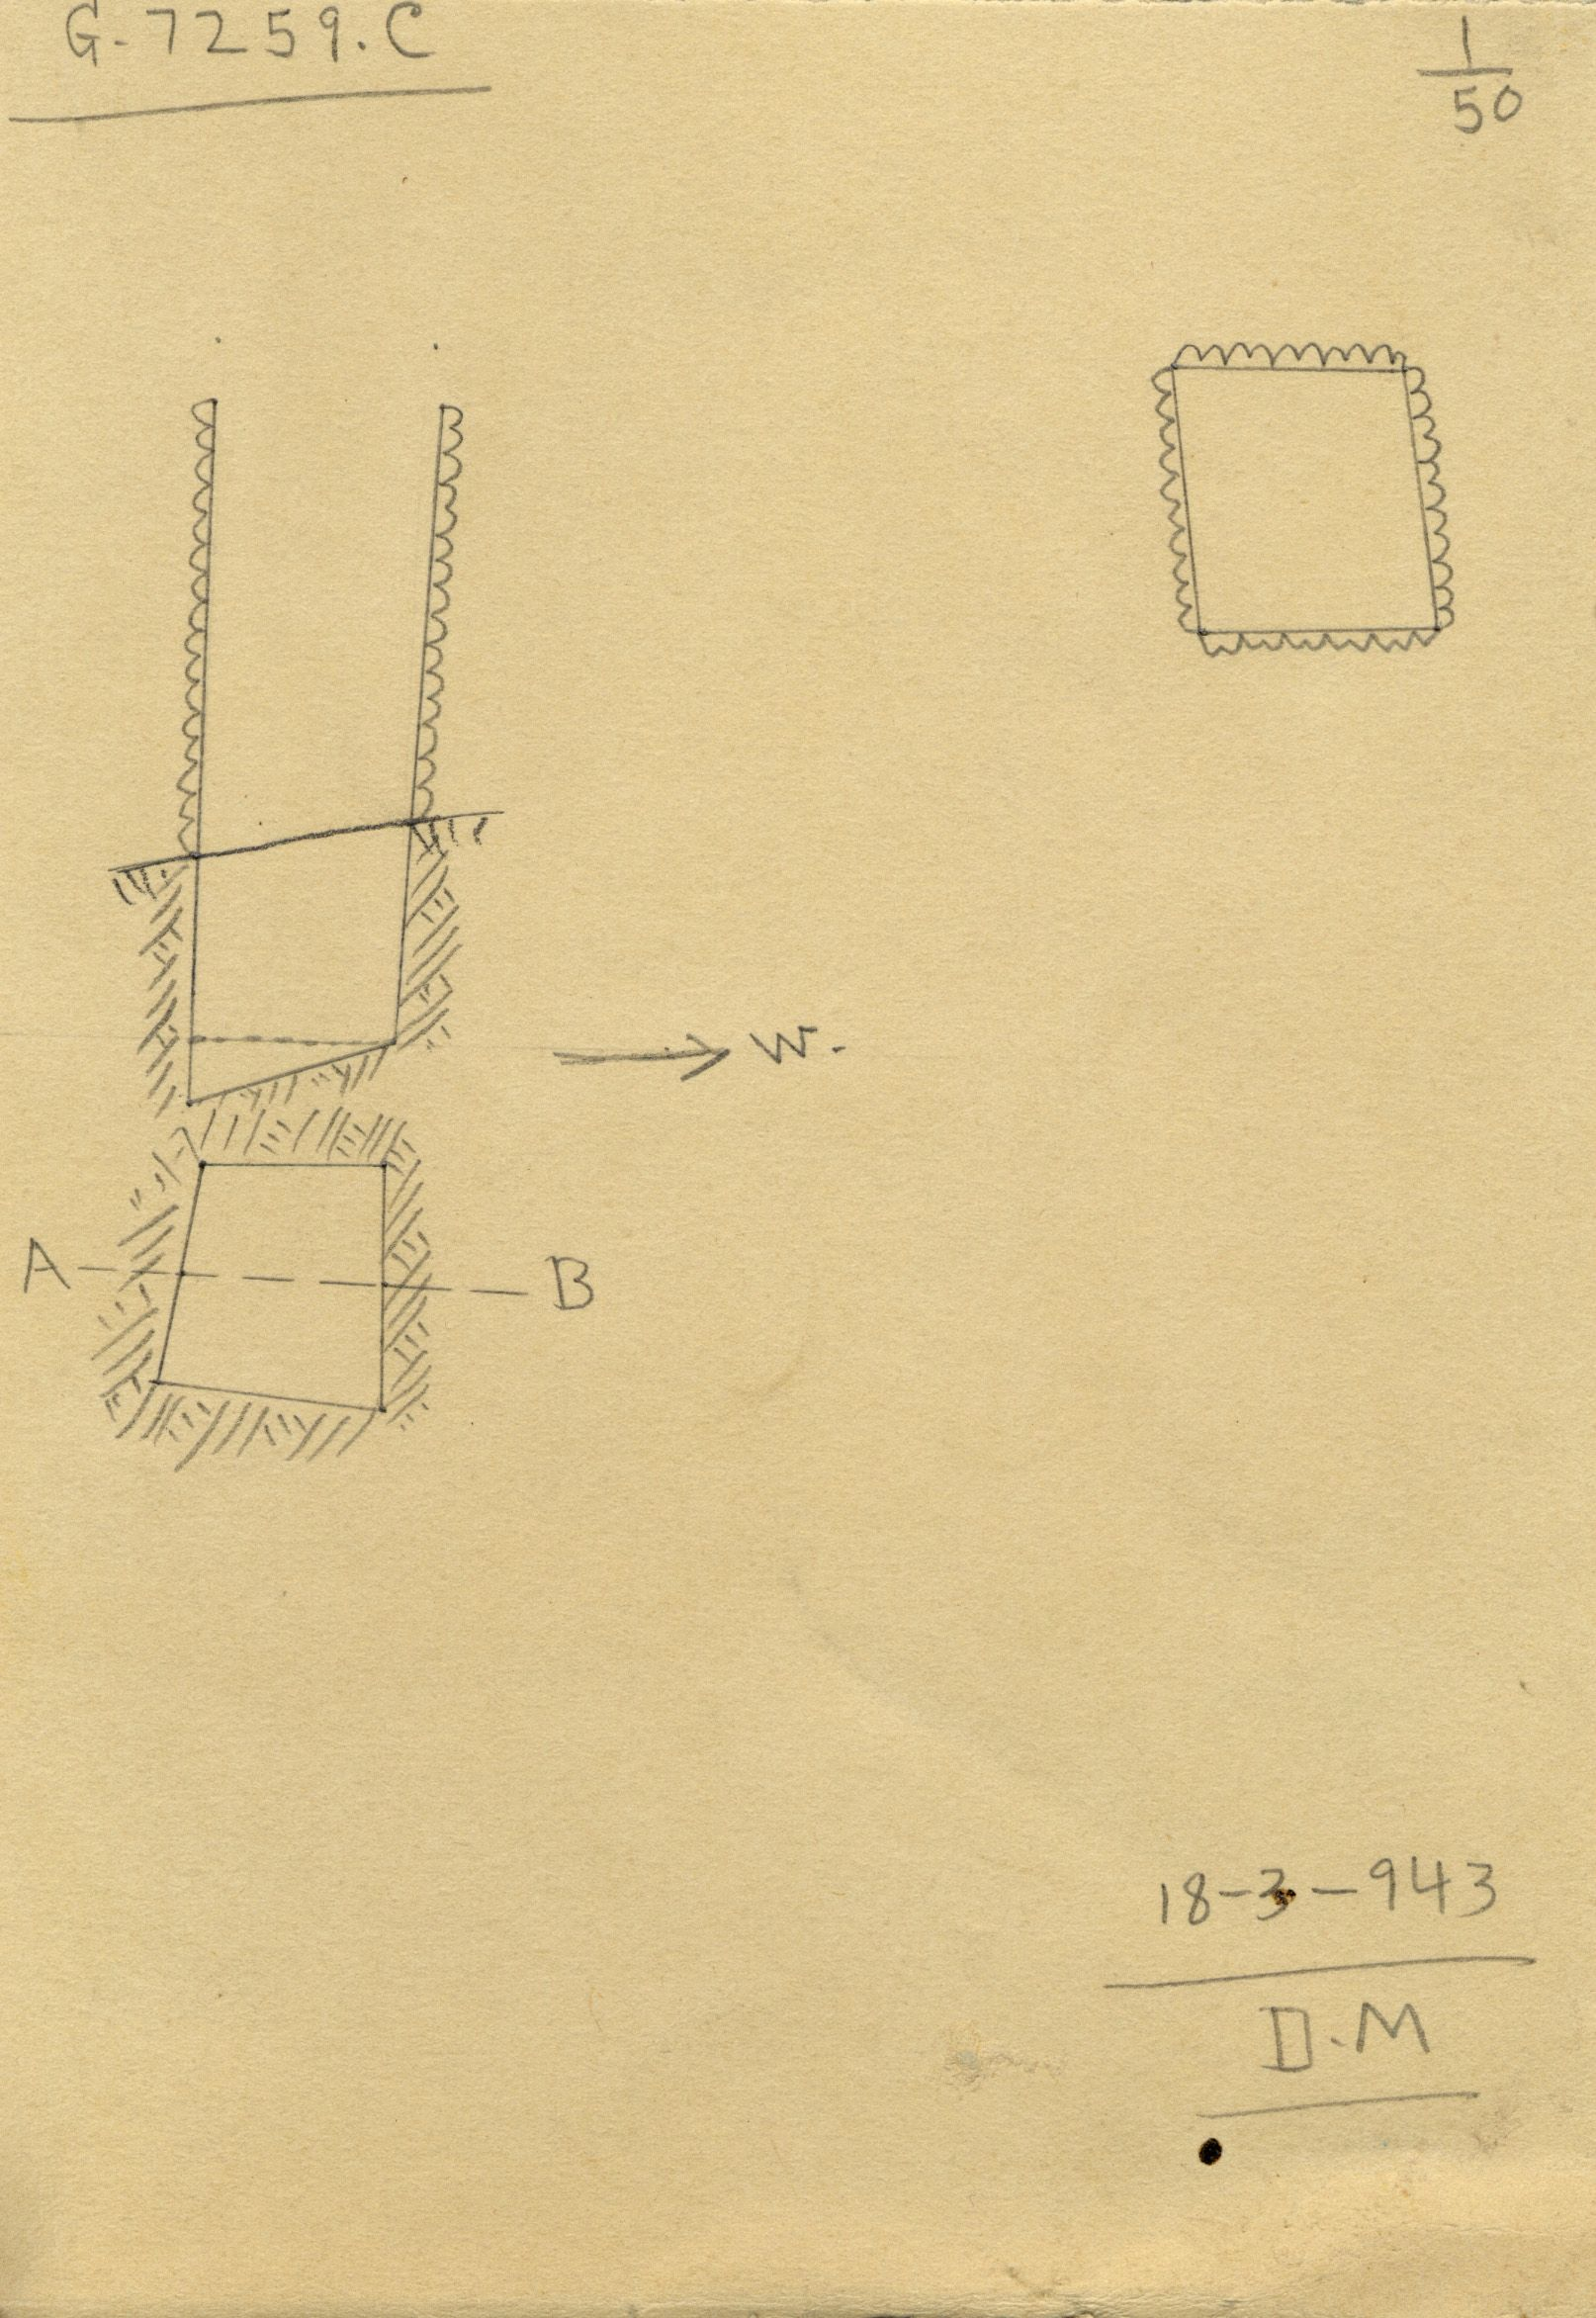 Maps and plans: G 7259, Shaft C